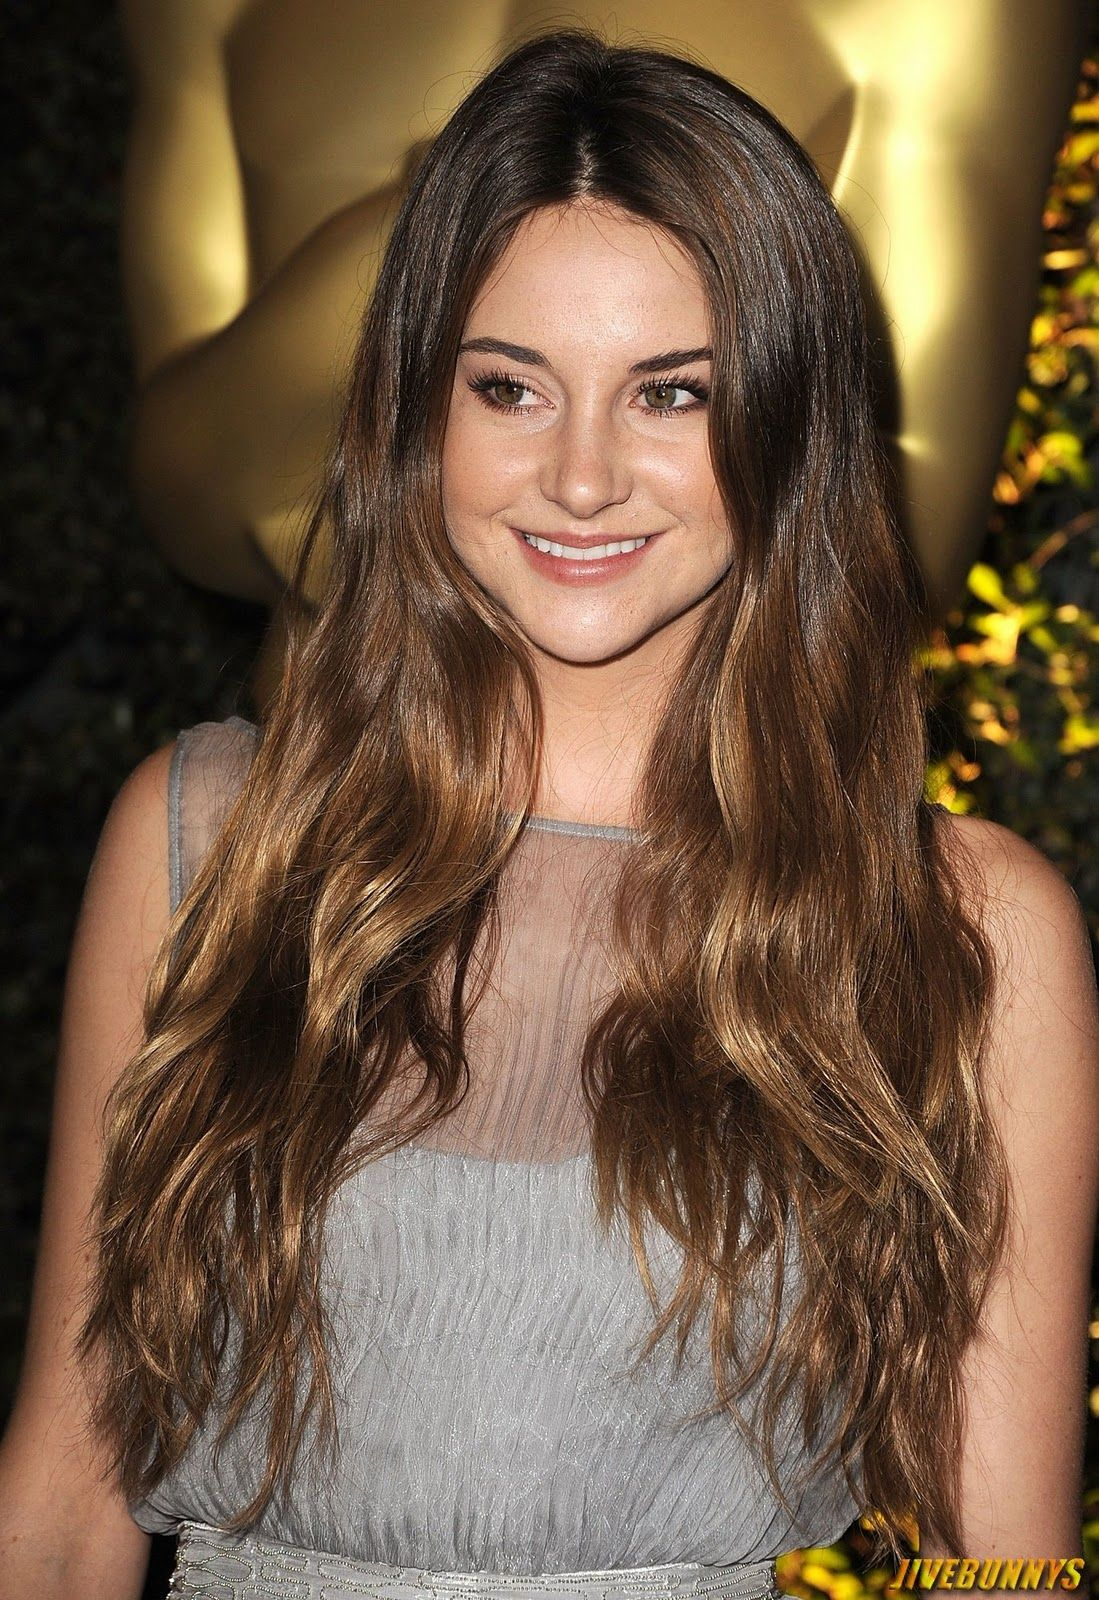 Haircut for men all angles shailene woodley hermosa mujer  shailene woodley and beautiful people